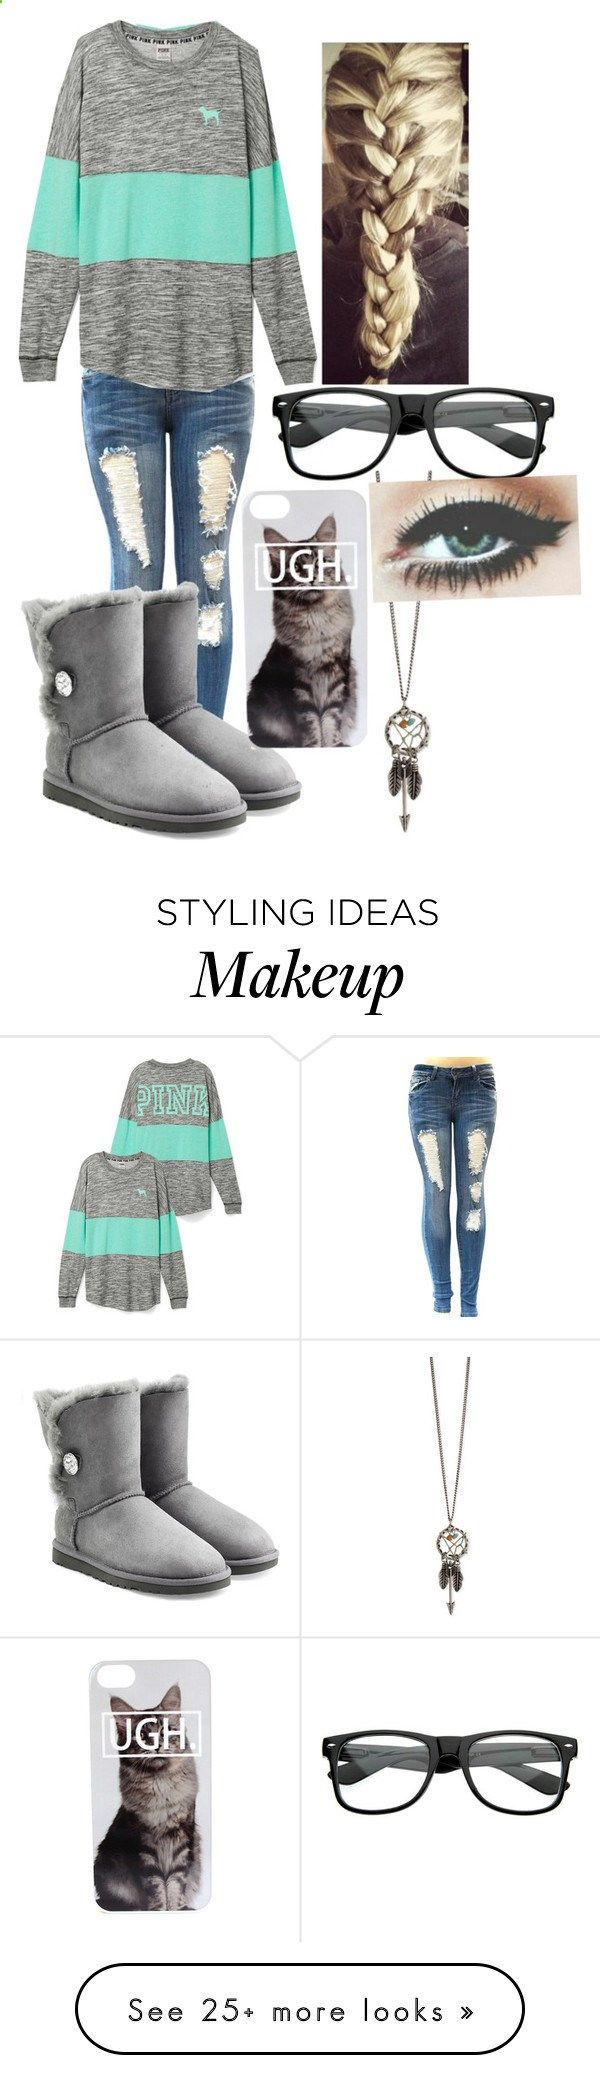 Lazy dayz by alyssamar on Polyvore featuring UGG Australia